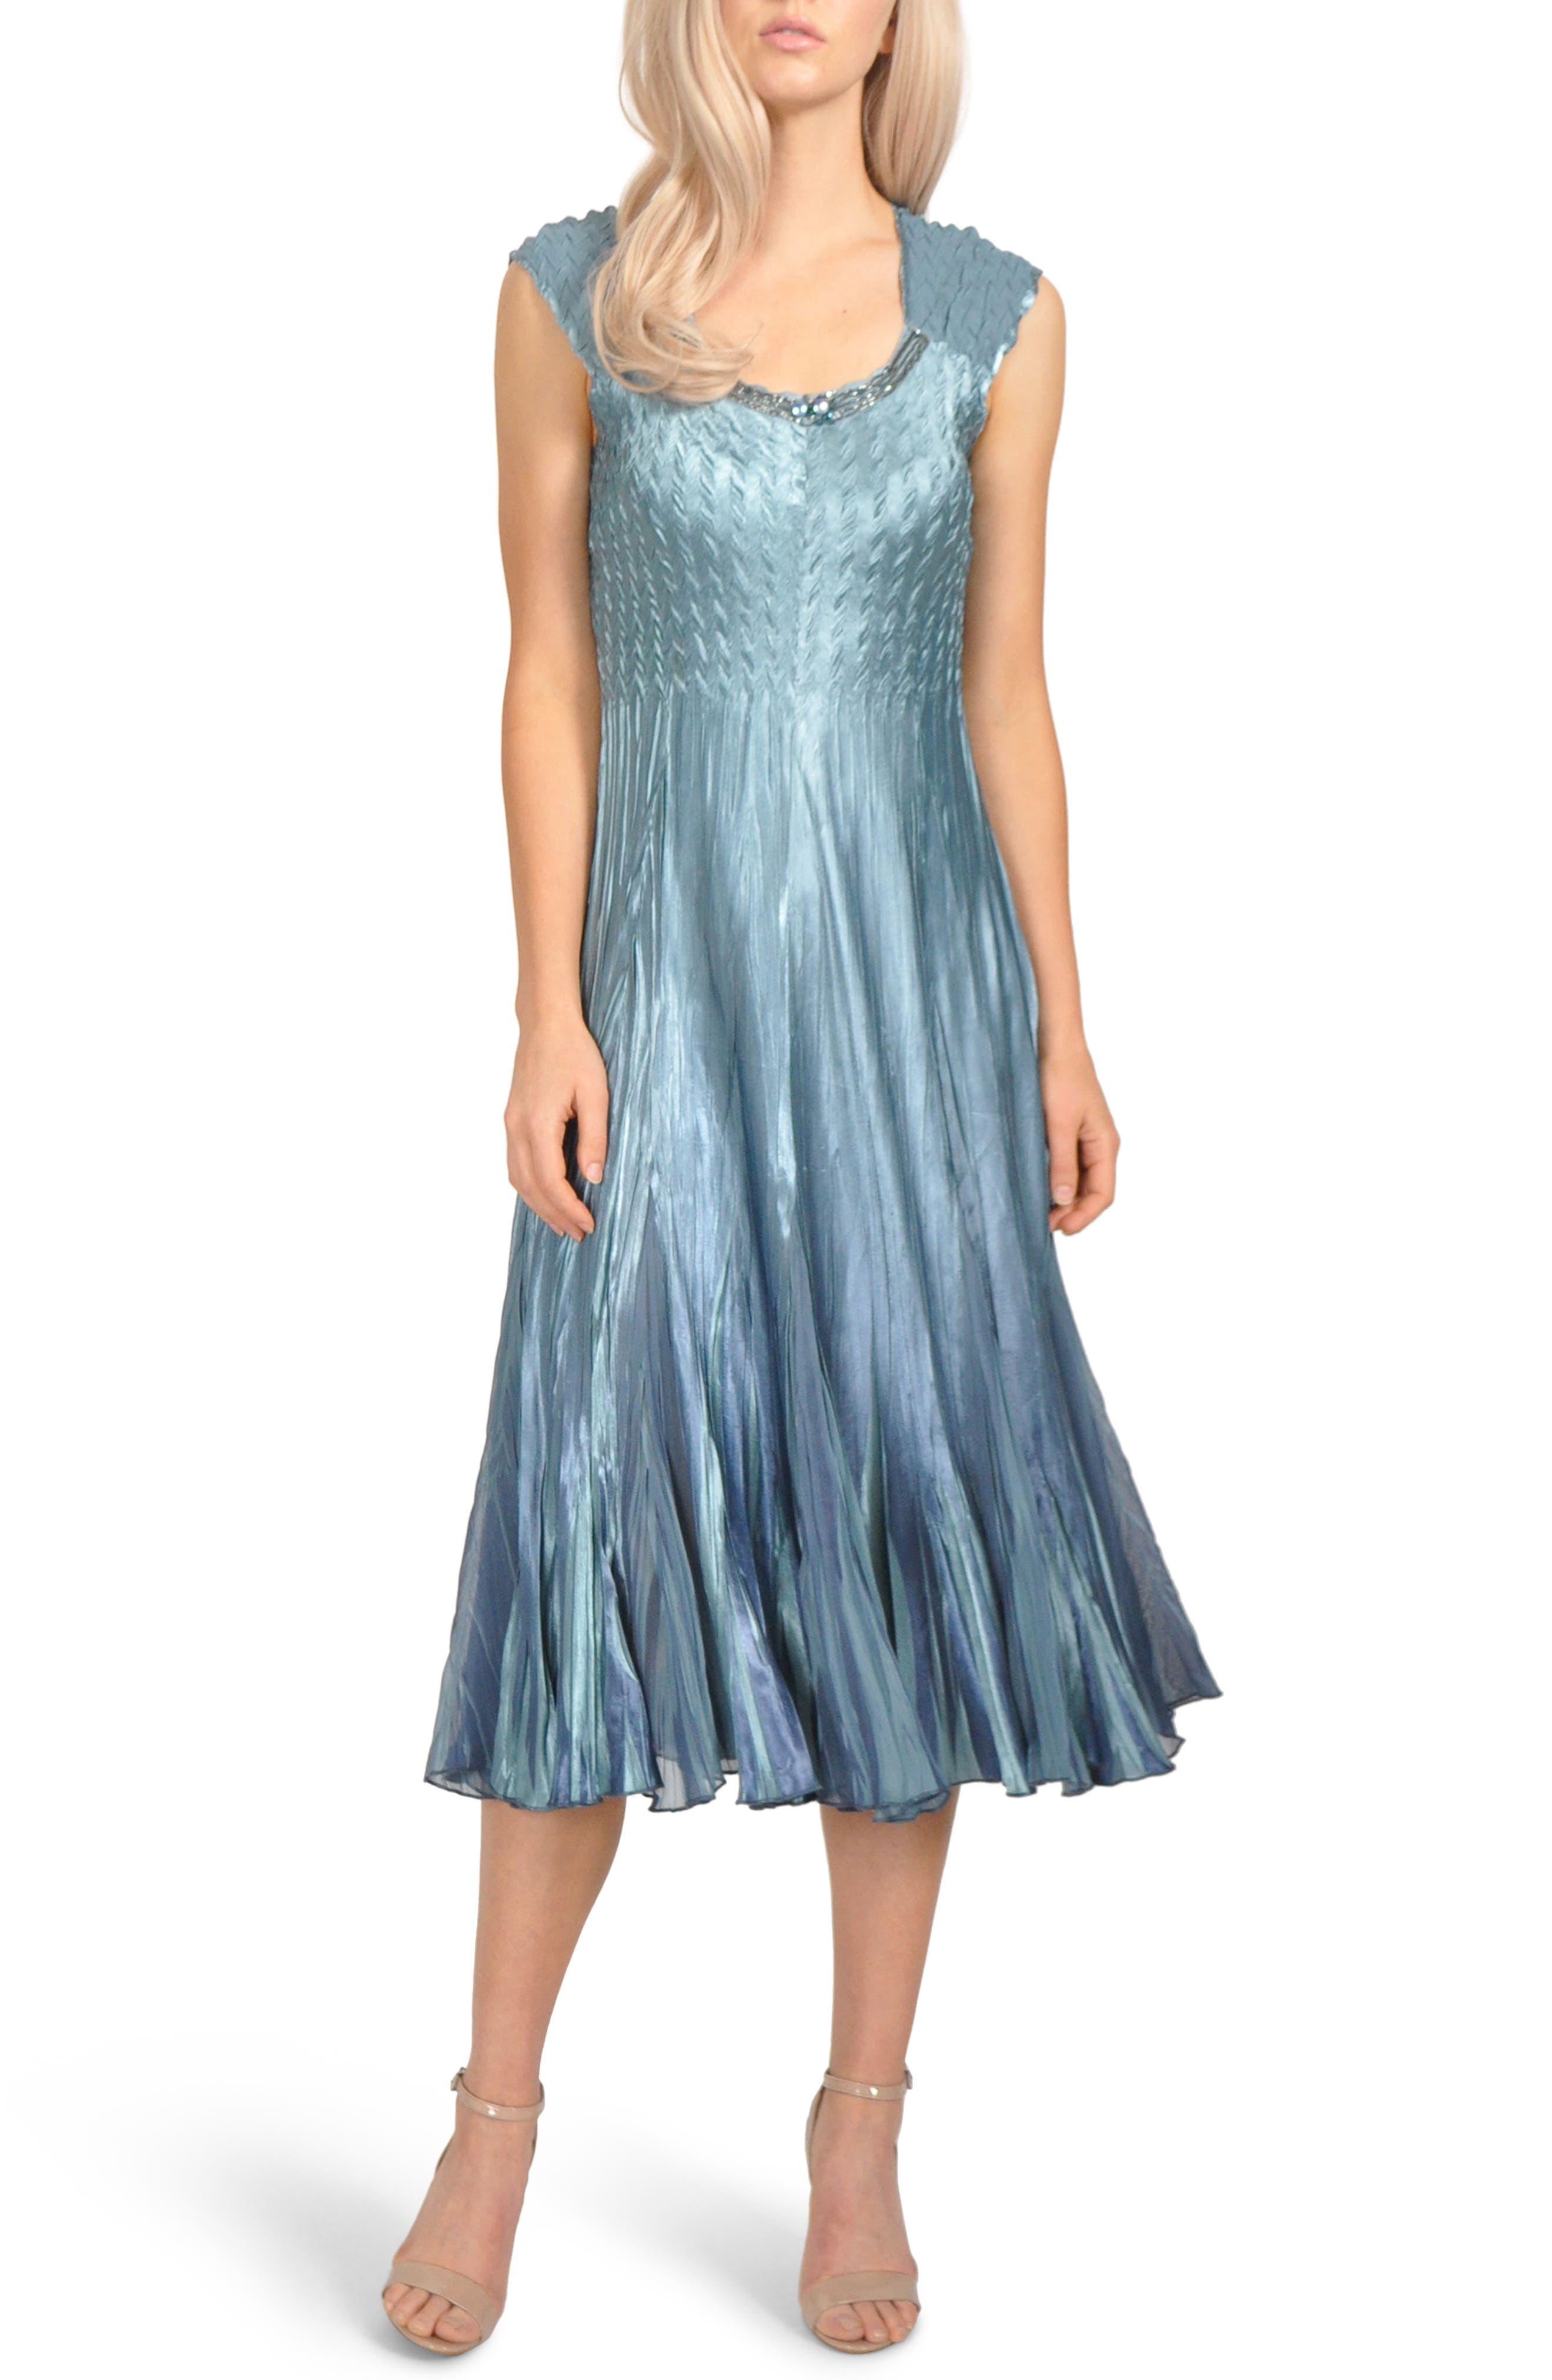 Embellished Pleat Mixed Media Dress with Jacket,                             Alternate thumbnail 3, color,                             SILVER BLUE OMBRE